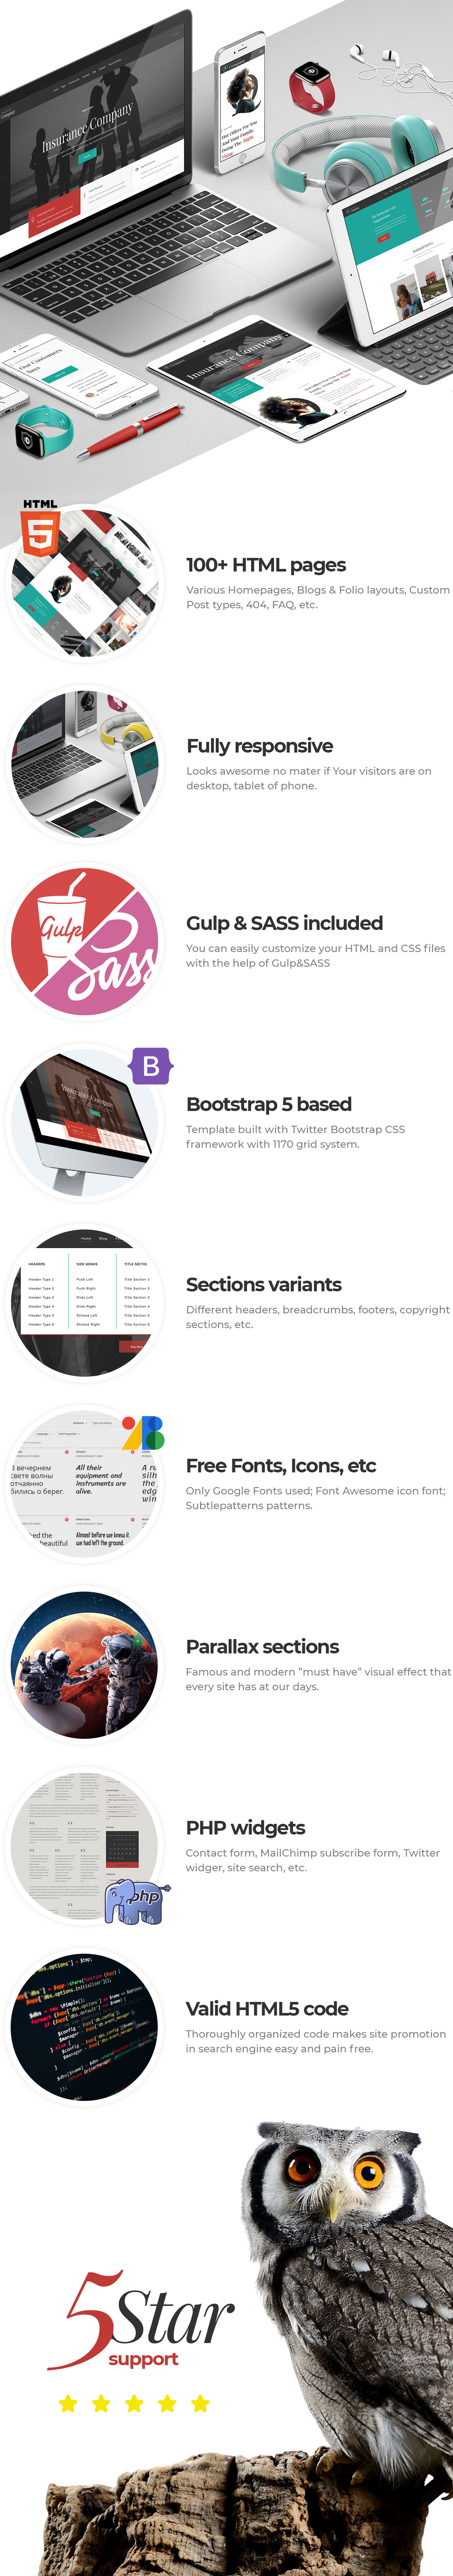 Inshura - Insurance Company HTML Template features